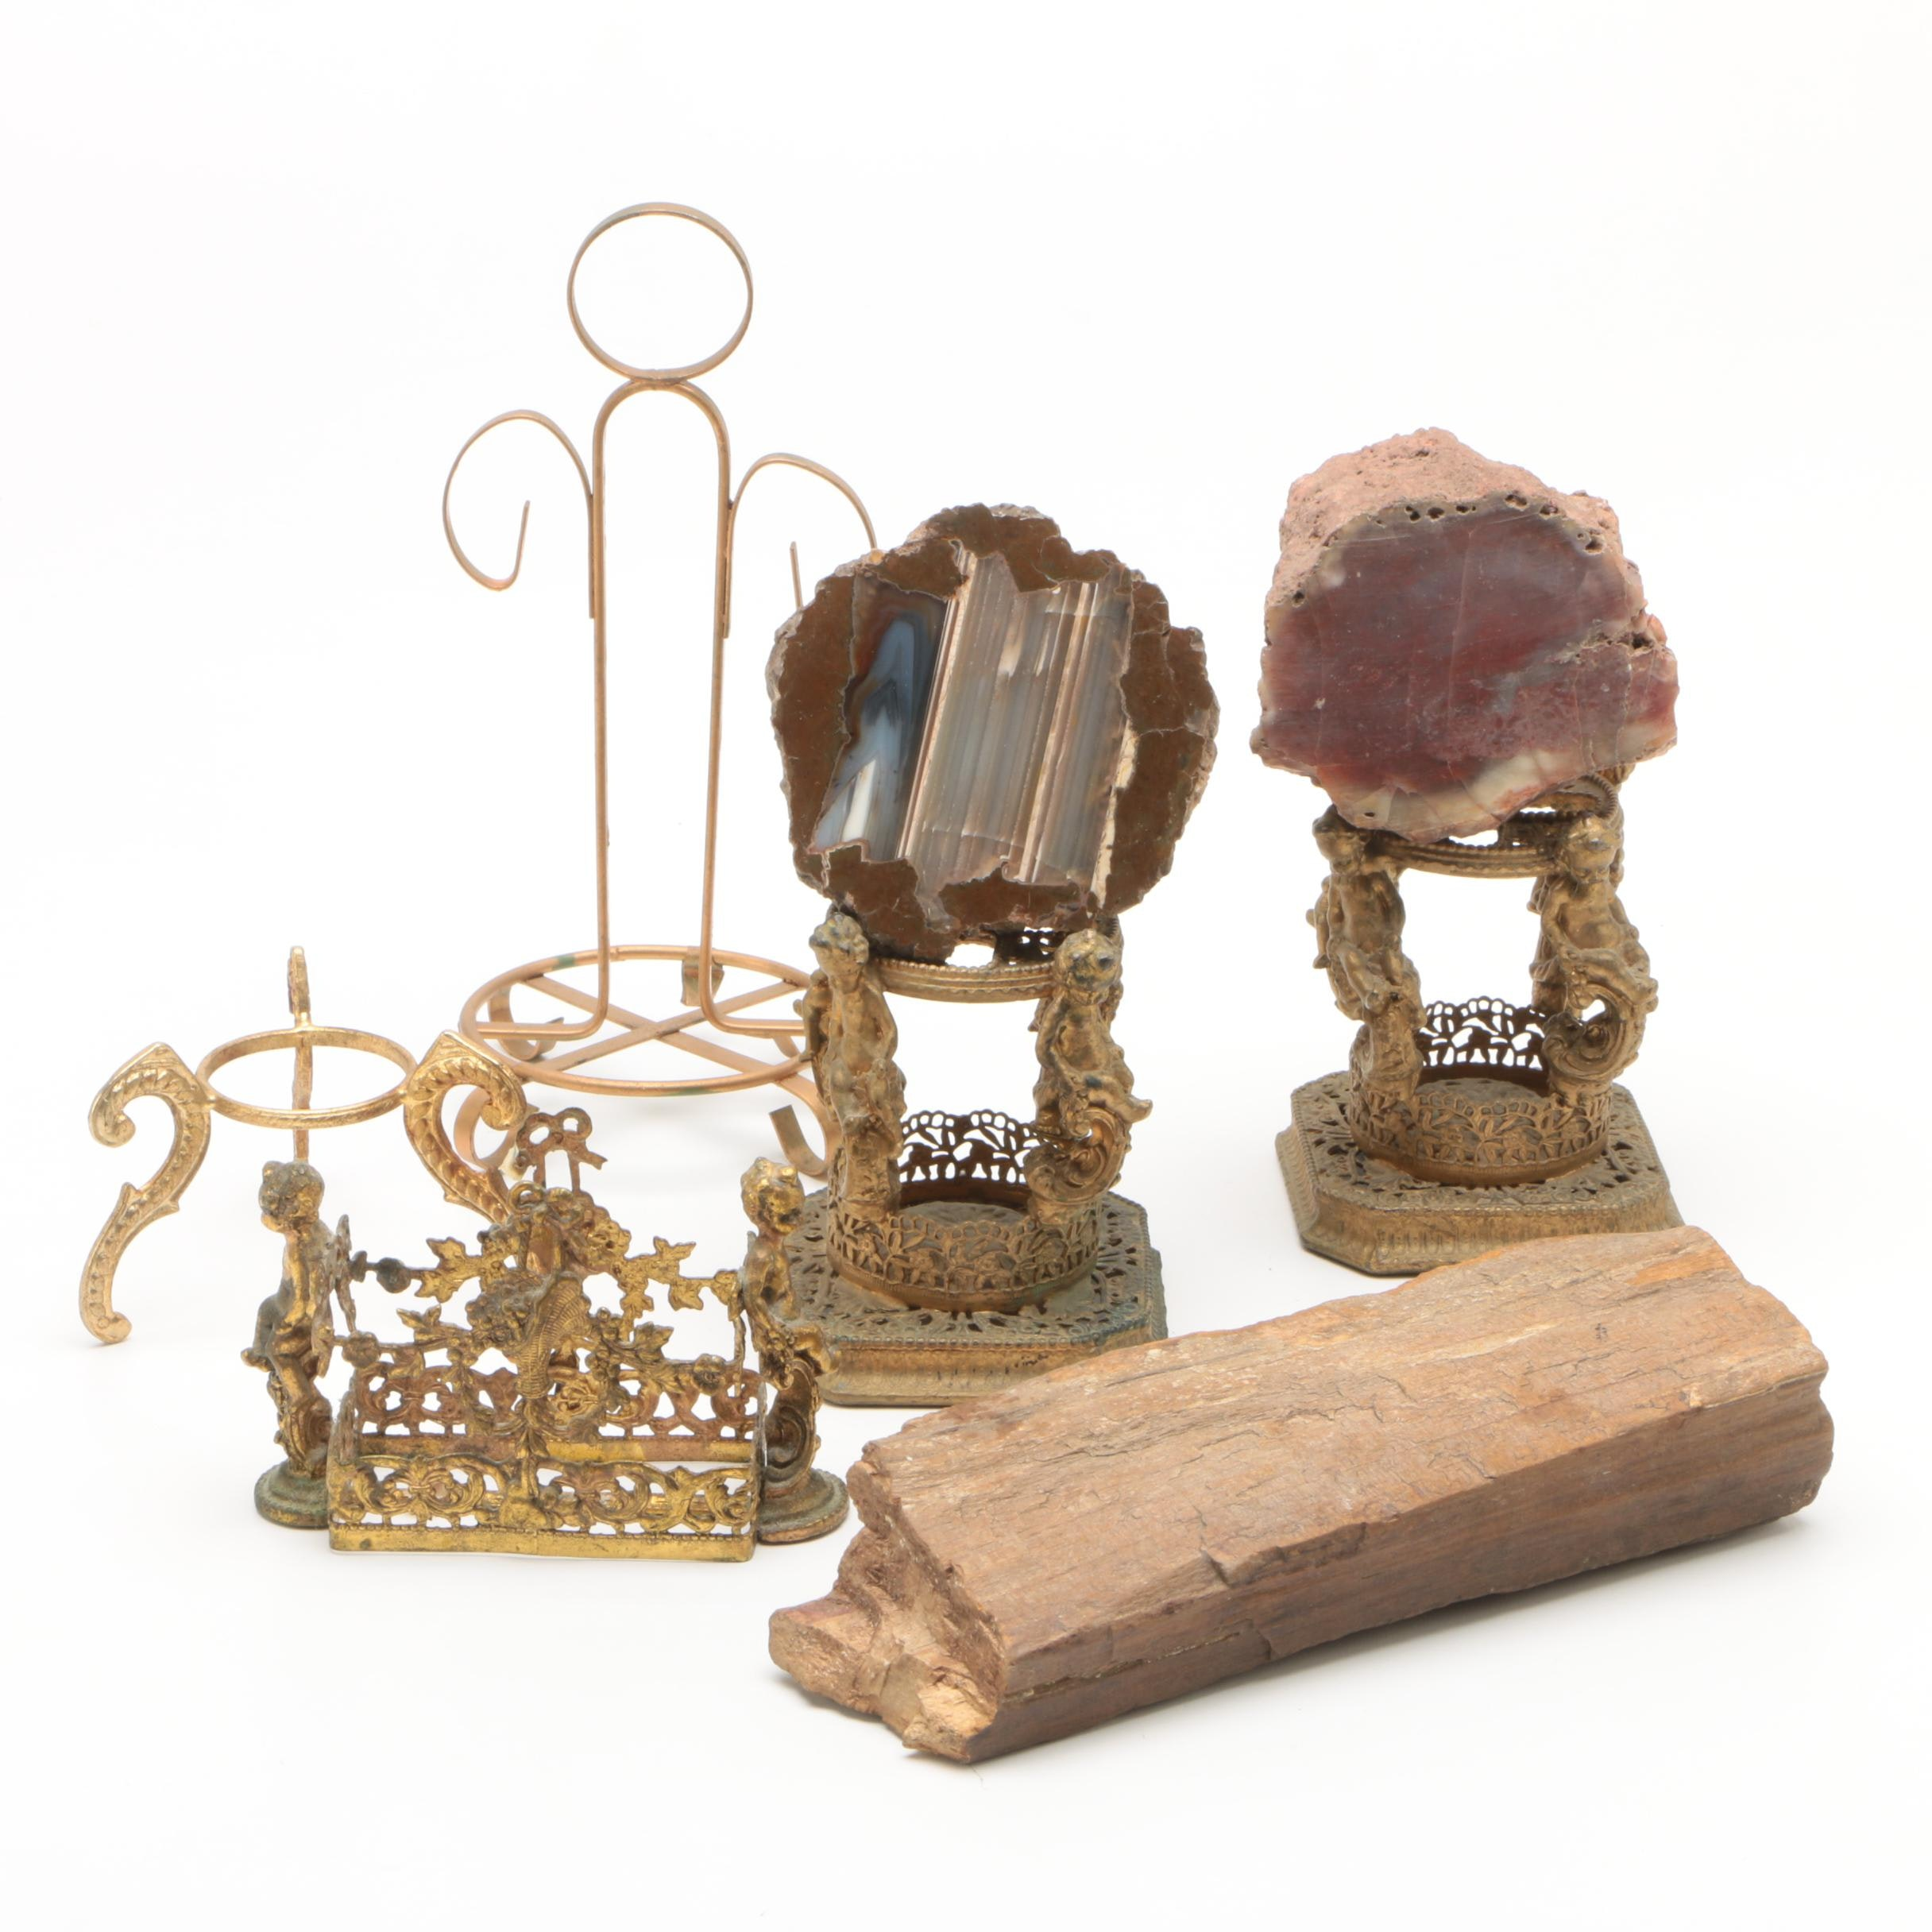 Brass Stands and Mineral Specimens Including Petrified Wood